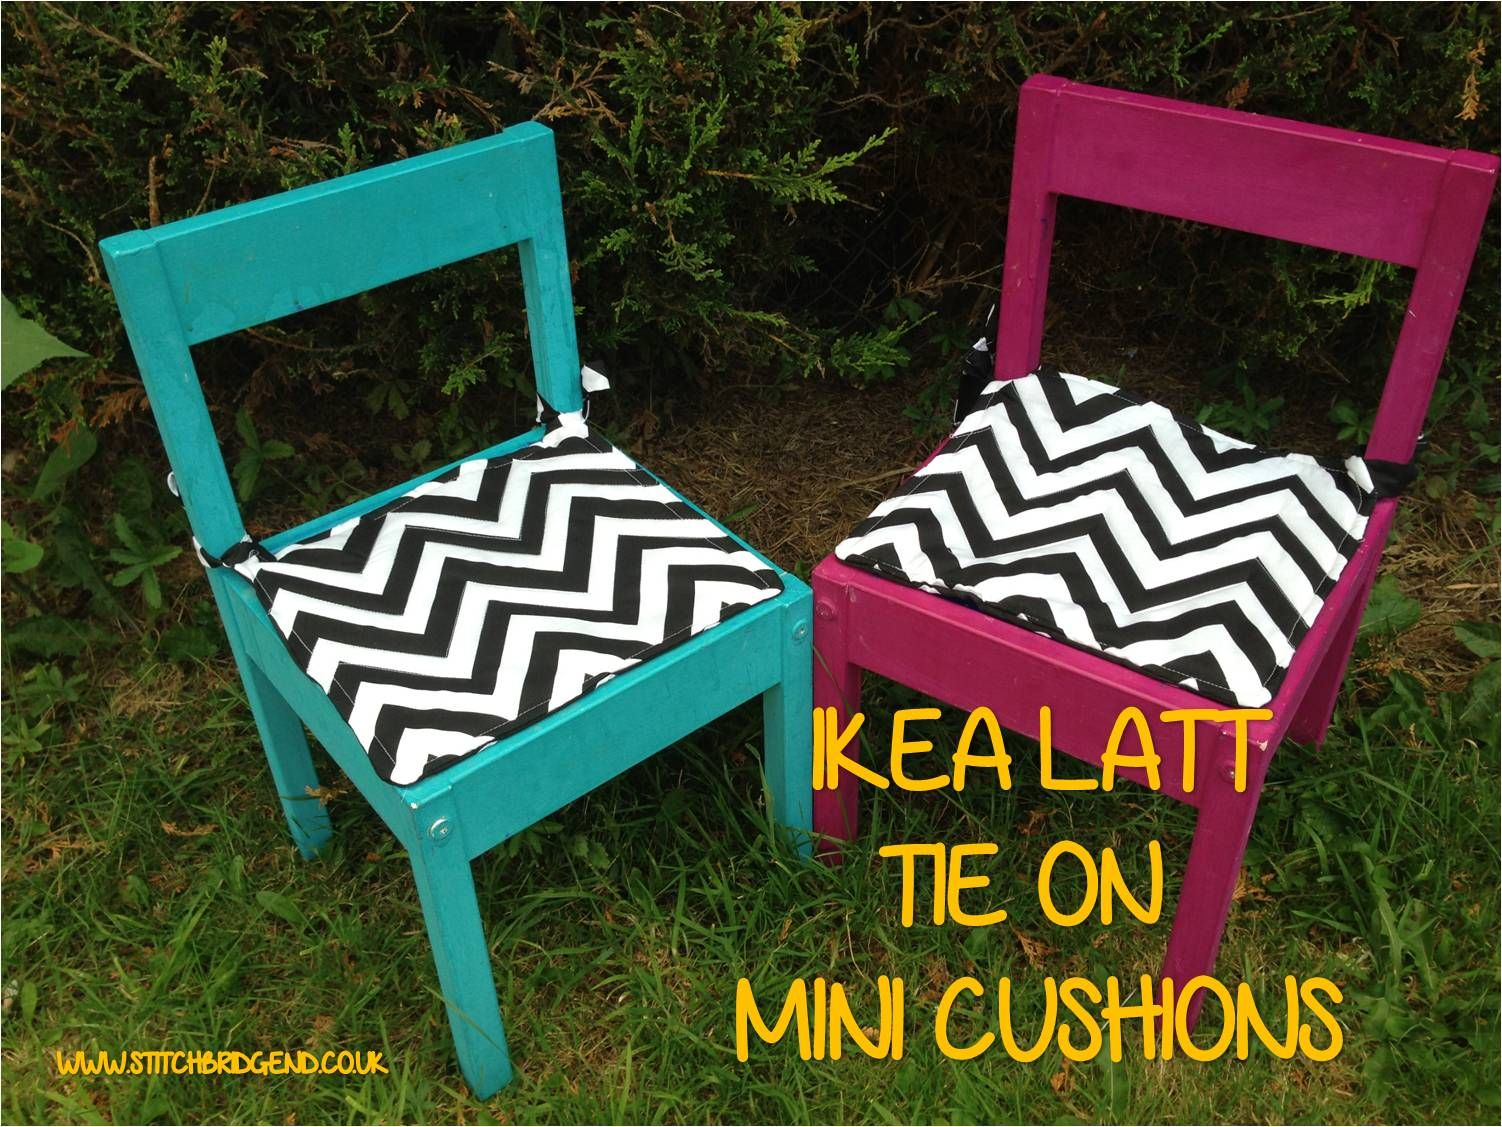 Ikea kids table and chairs - Ikea Latt Chair Cushions Diy Super Easy Quilted Cushions For Kids Free